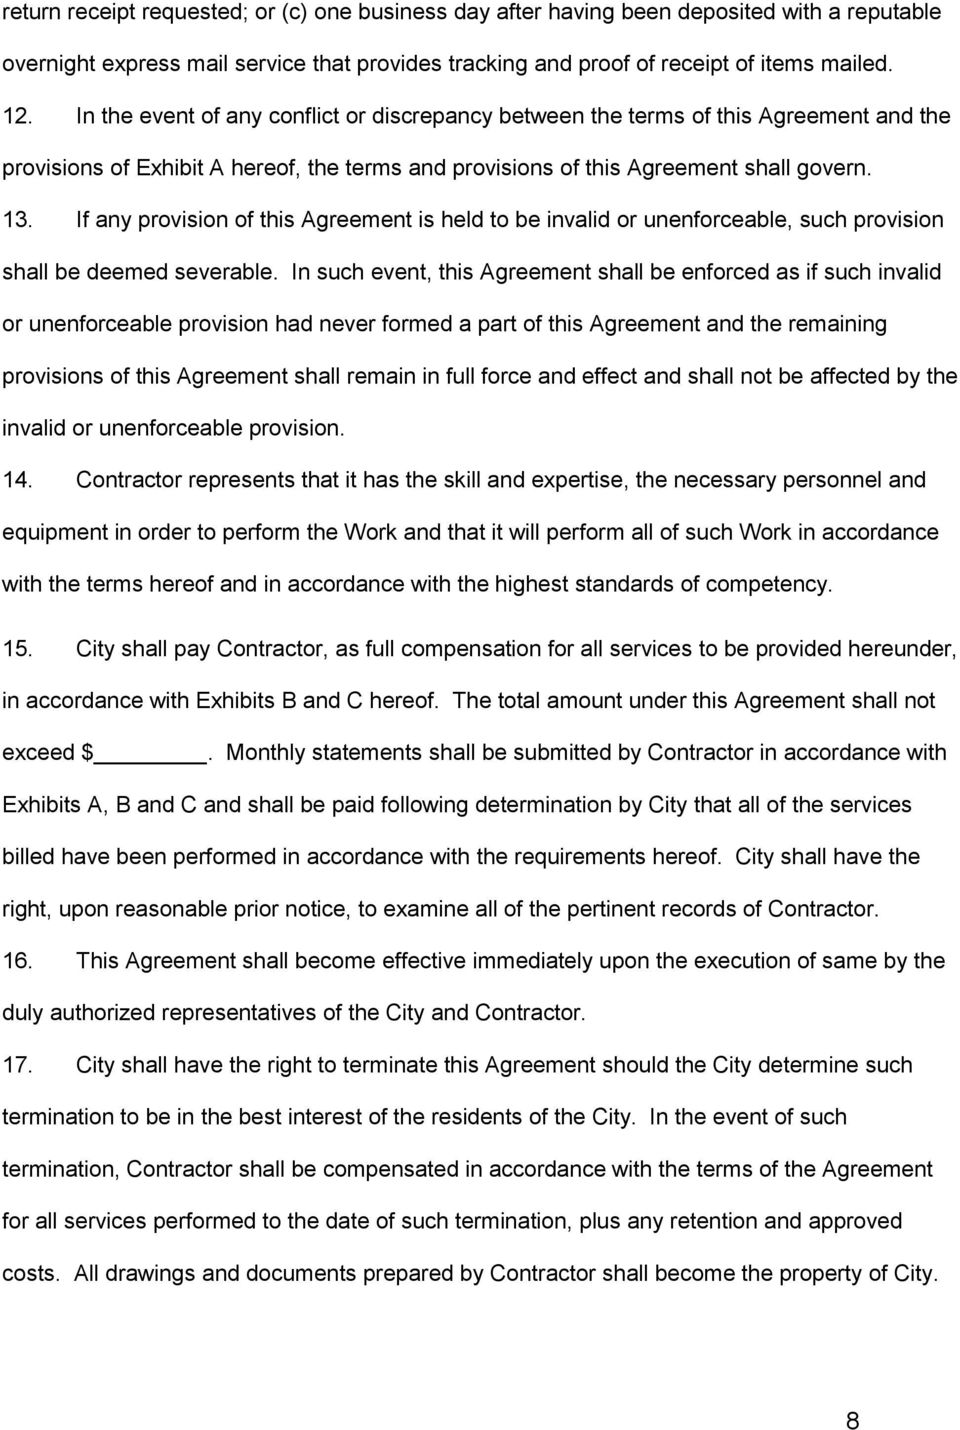 If any provision of this Agreement is held to be invalid or unenforceable, such provision shall be deemed severable.